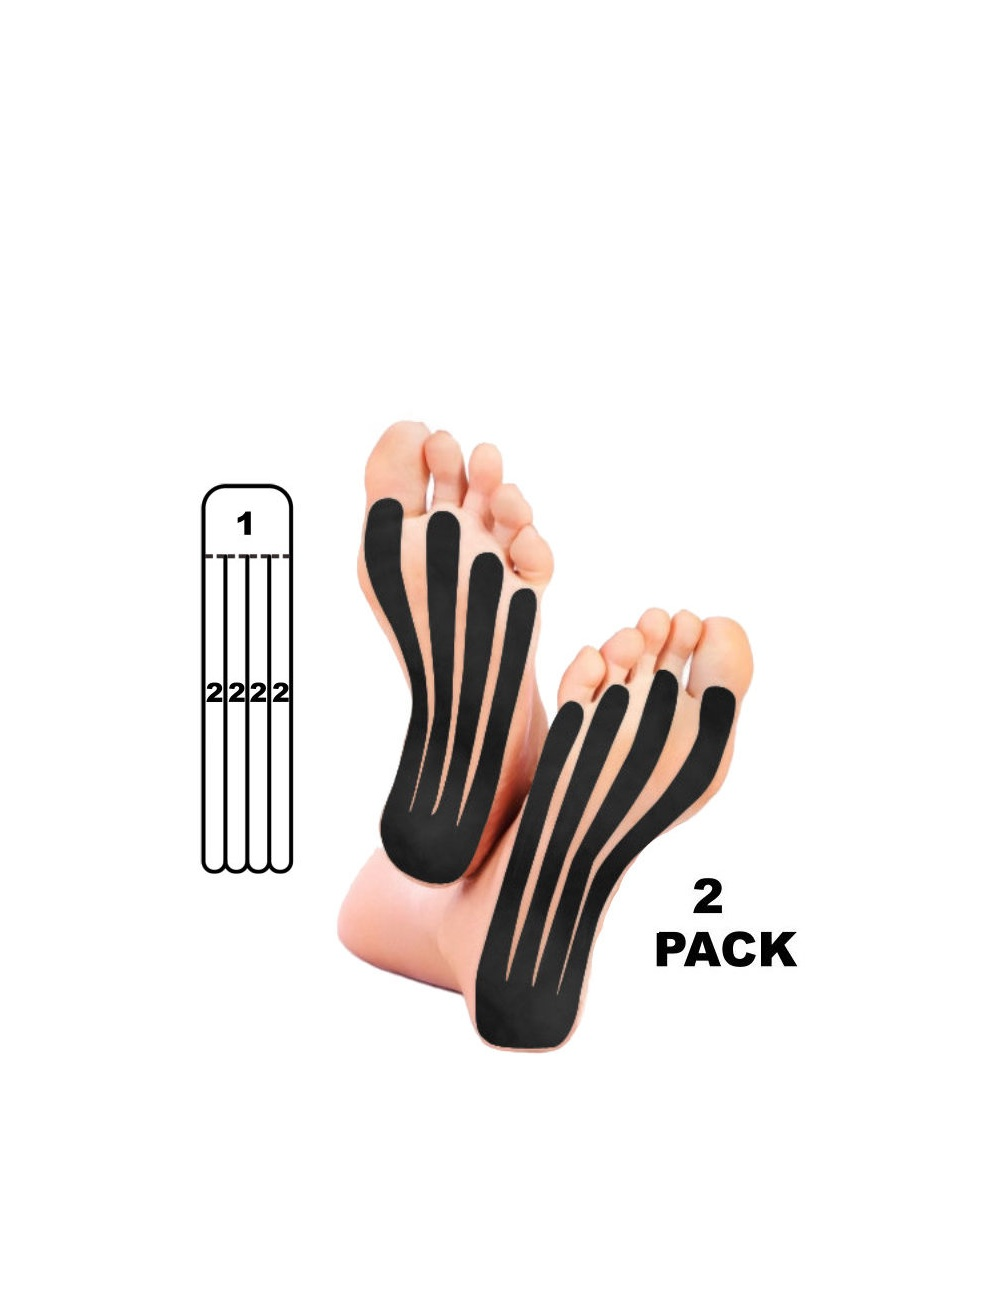 Kindmax Kinesiology Tape Precut Foot Support - Black